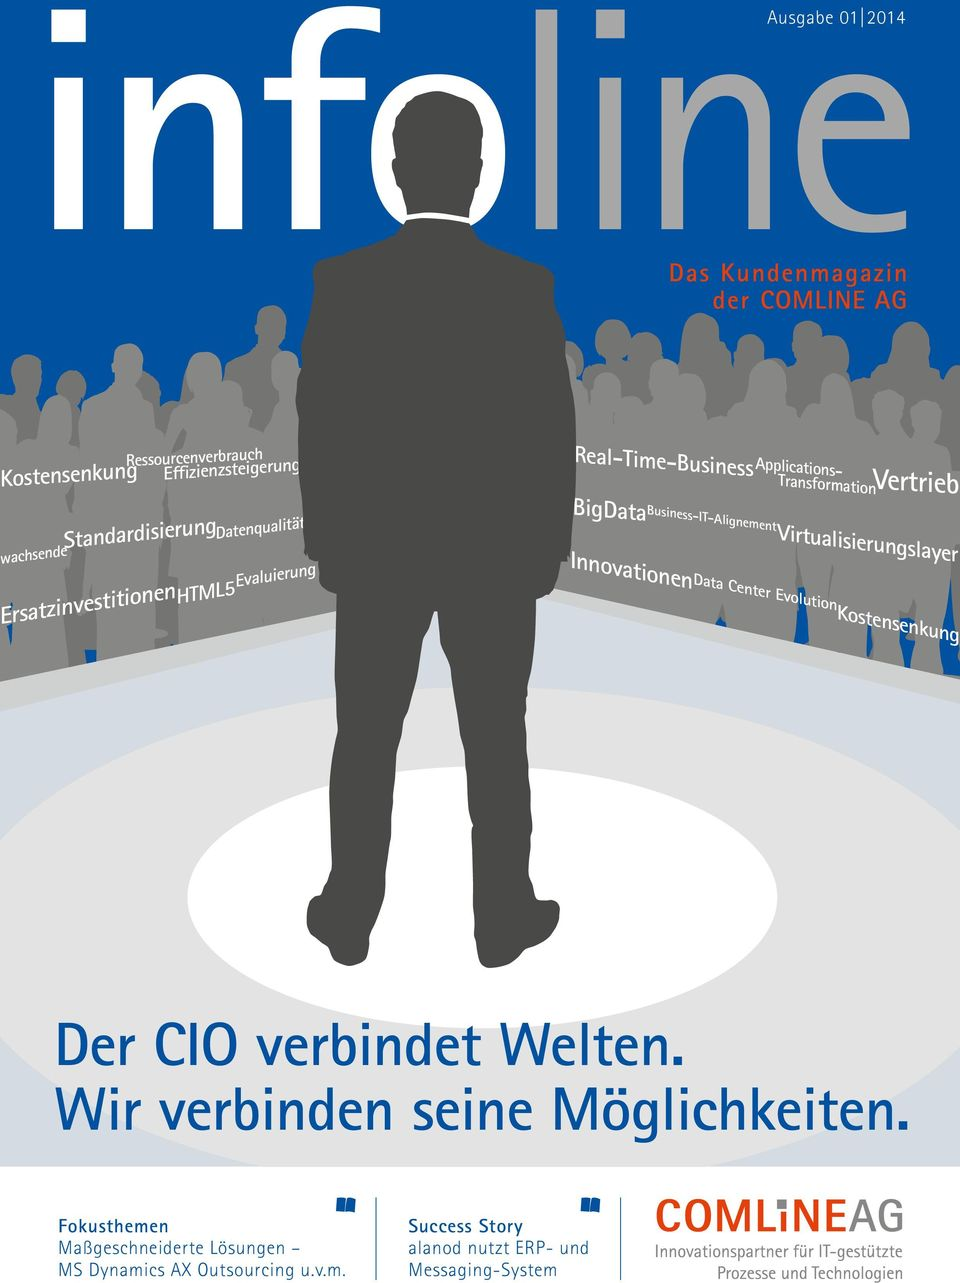 Virtualisierungslayer Innovationen Business-IT-Alignement Data Center Evolution Kostensenkung Der CIO verbindet Welten.